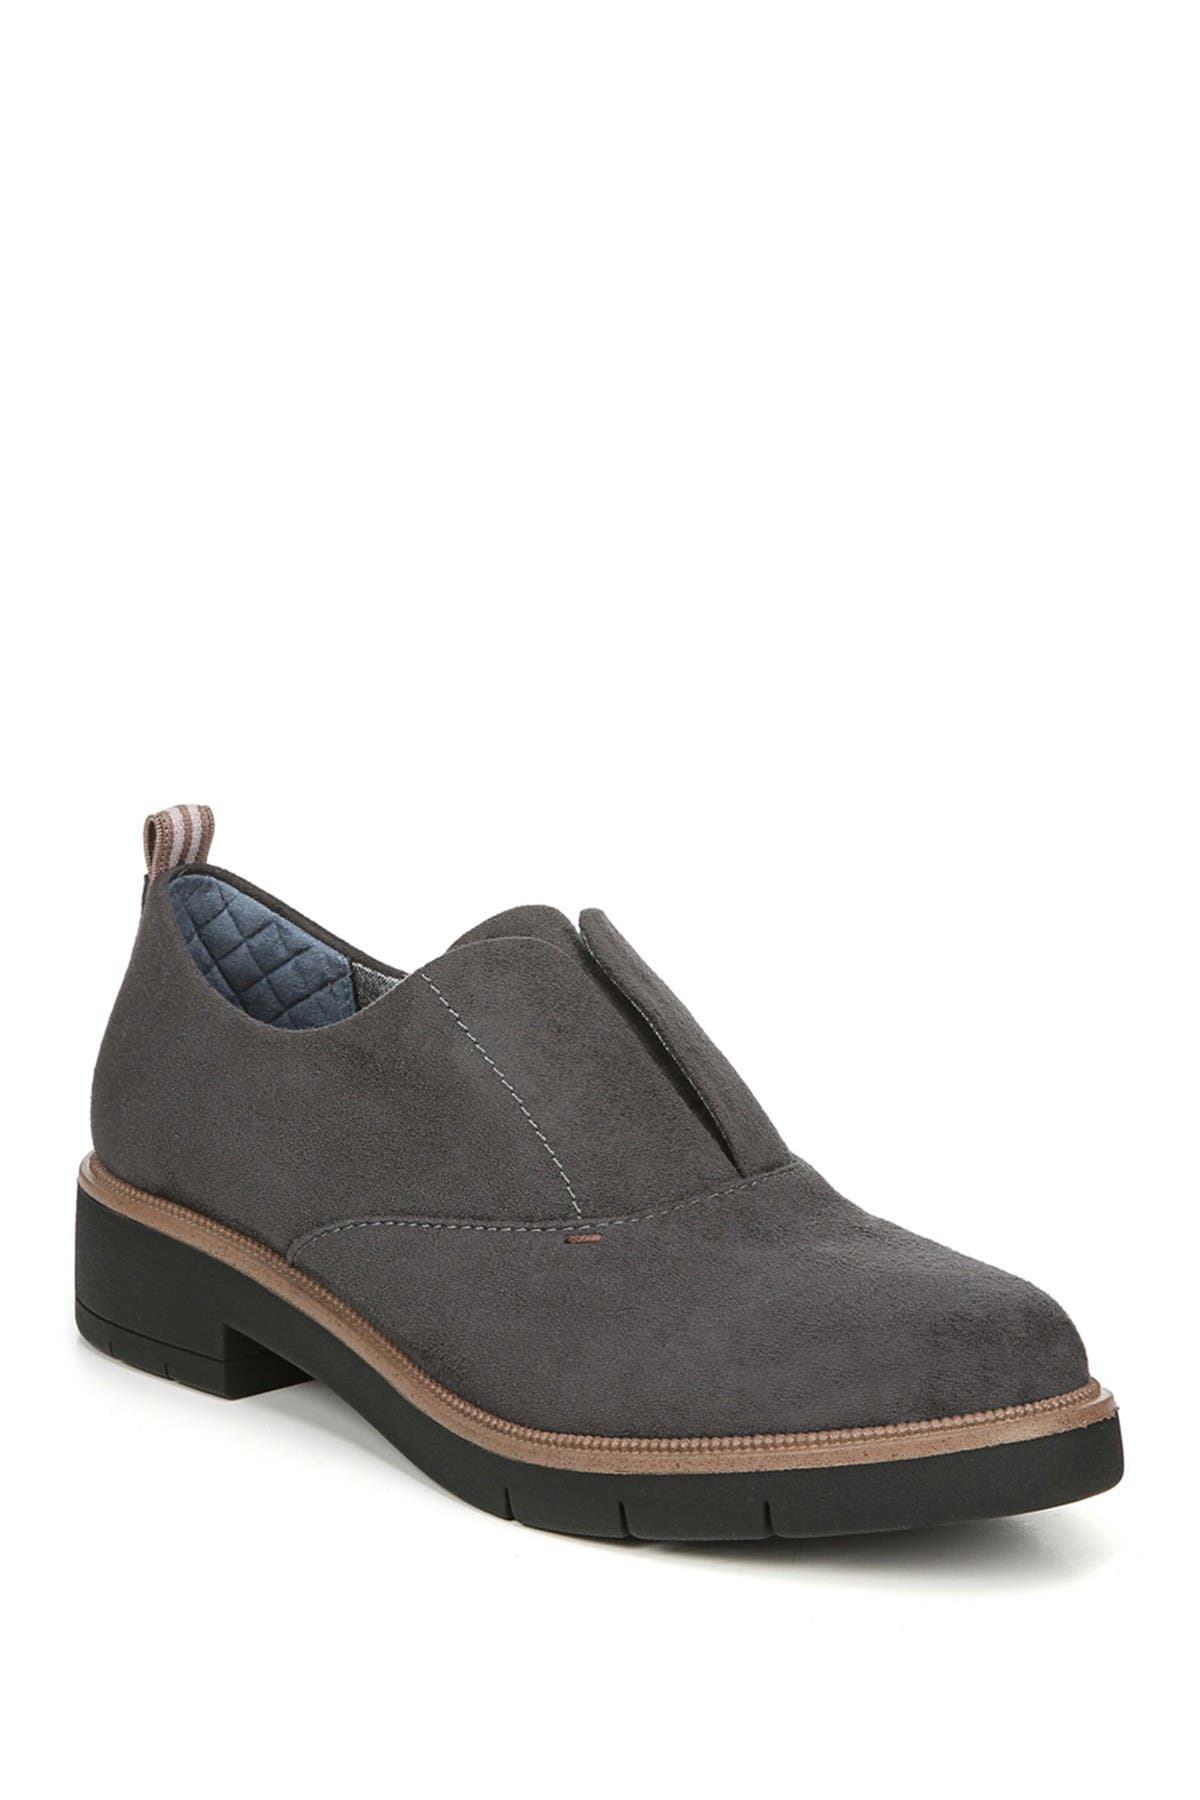 Image of Dr. Scholl's Glisten Notched Slip-On Loafer